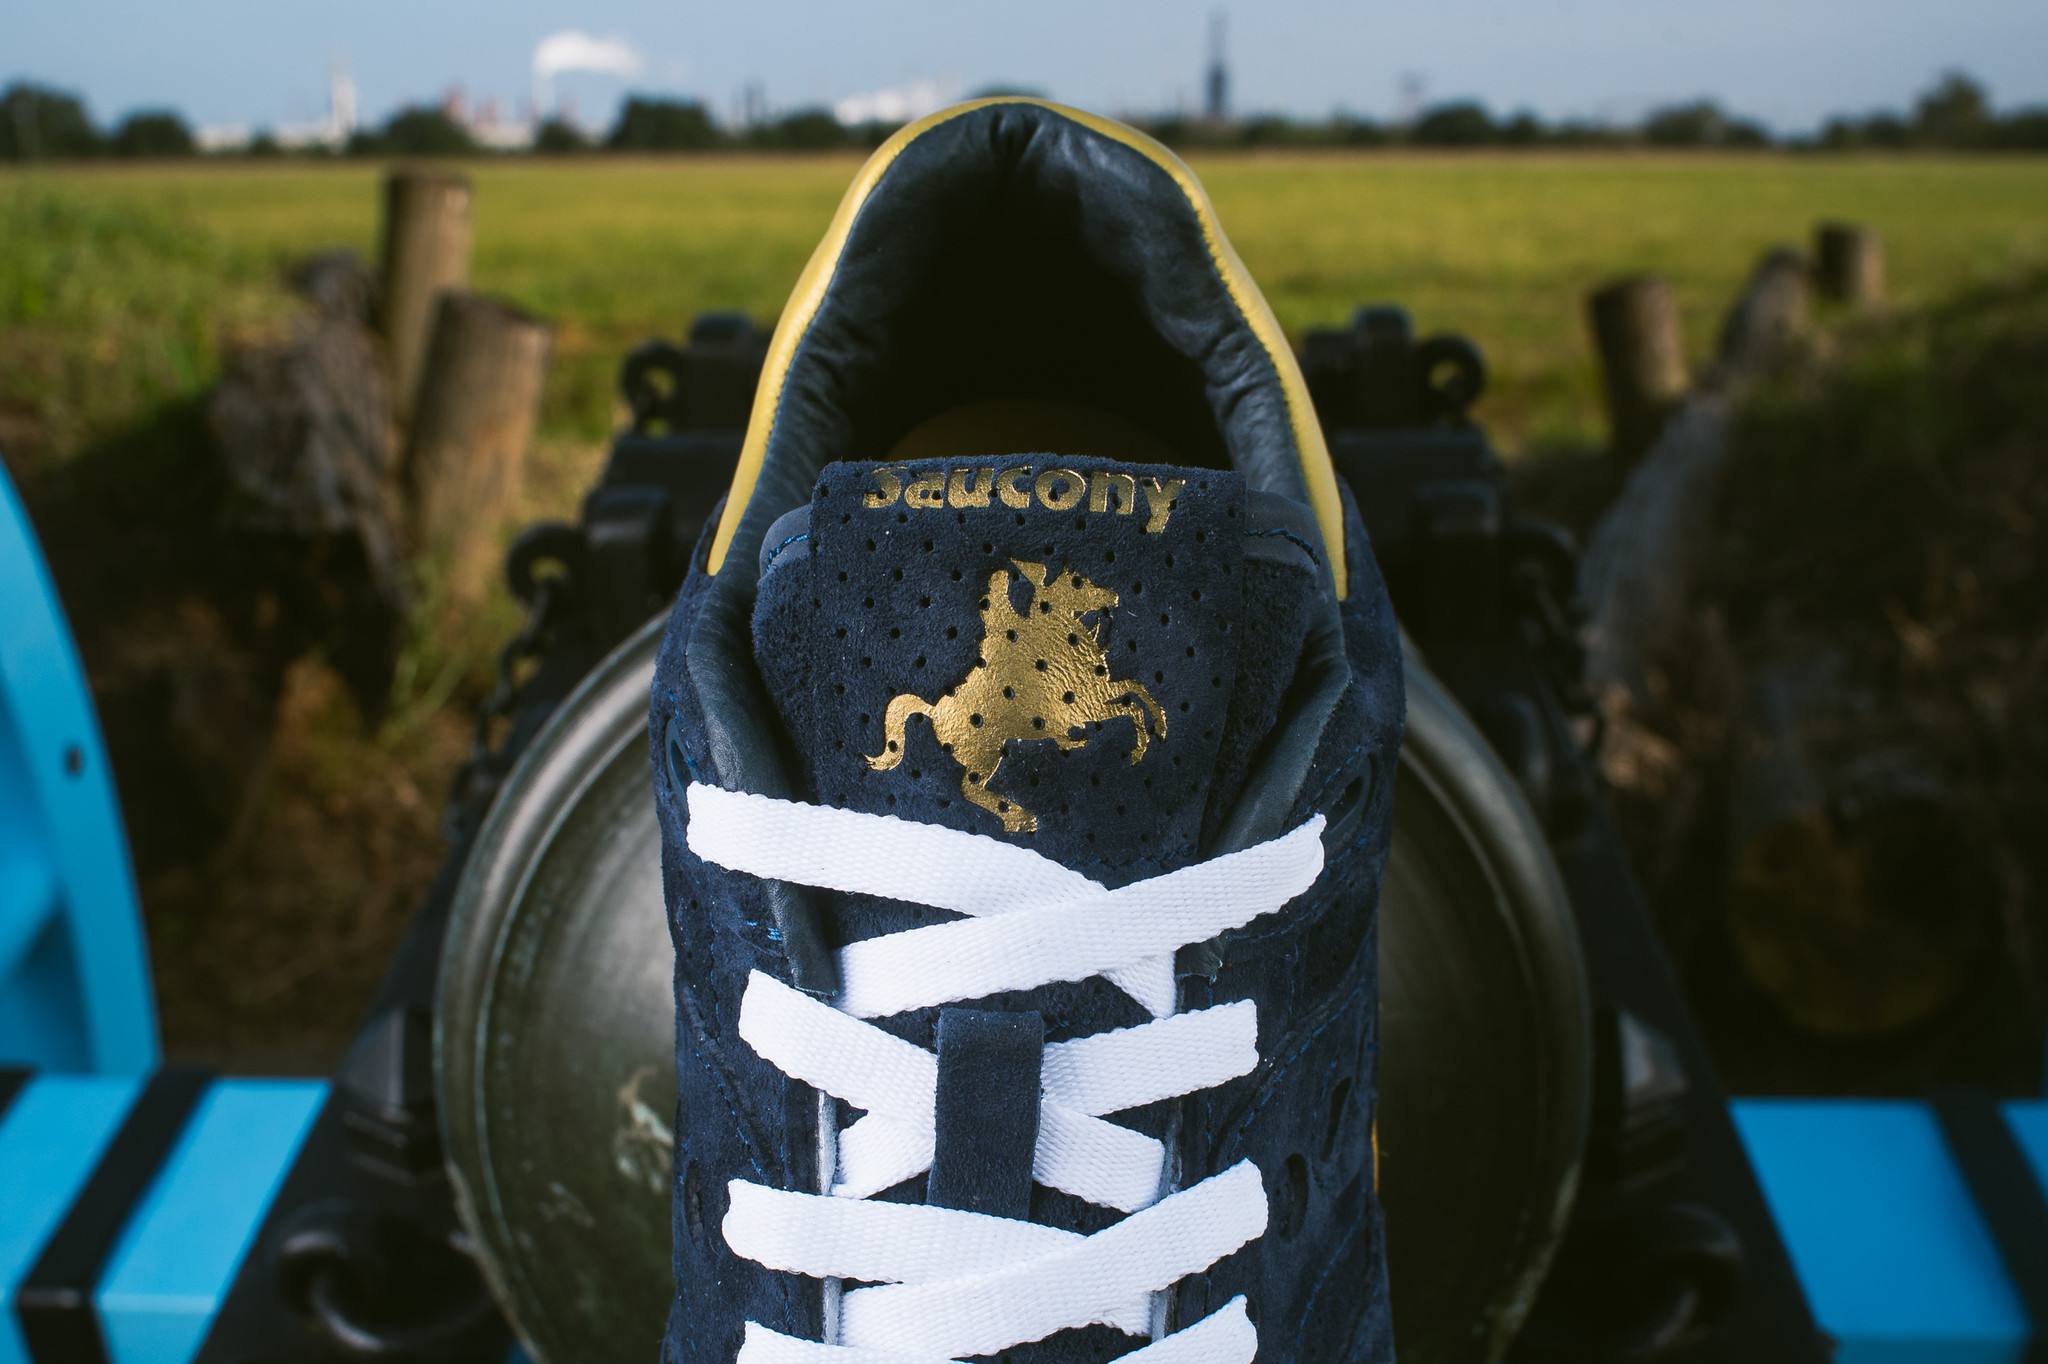 Sneaker_POlitics_X_Saucony_Courageous_Andrew_Jackson_Sneaker_POlitics_Battle_of_New_Orleans_Nola_23